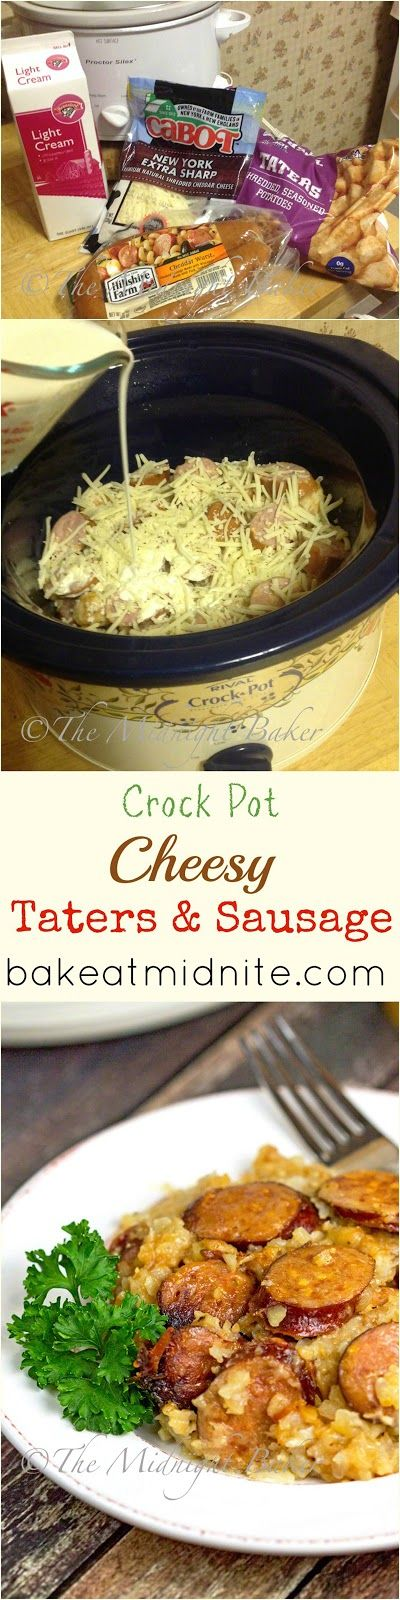 "Just admit it—we had you at ""Crock Pot Cheesy Taters & Sausage."""